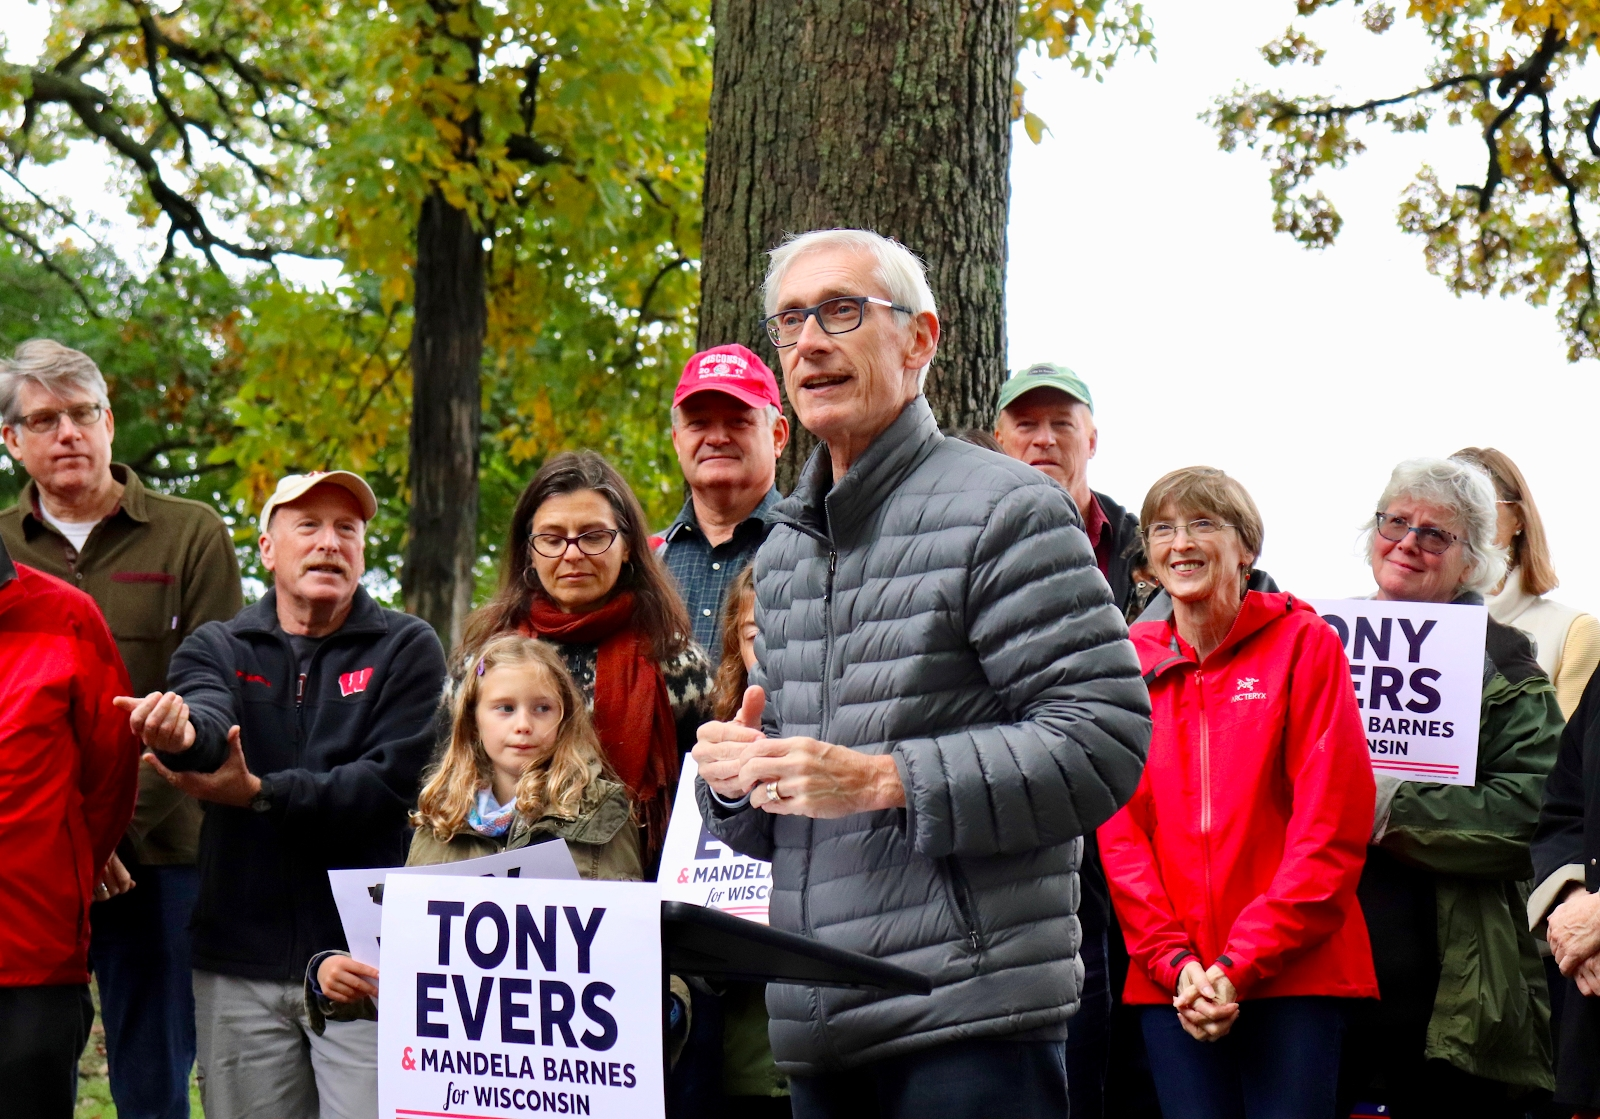 Tony Evers Launches Conservationists for Tony